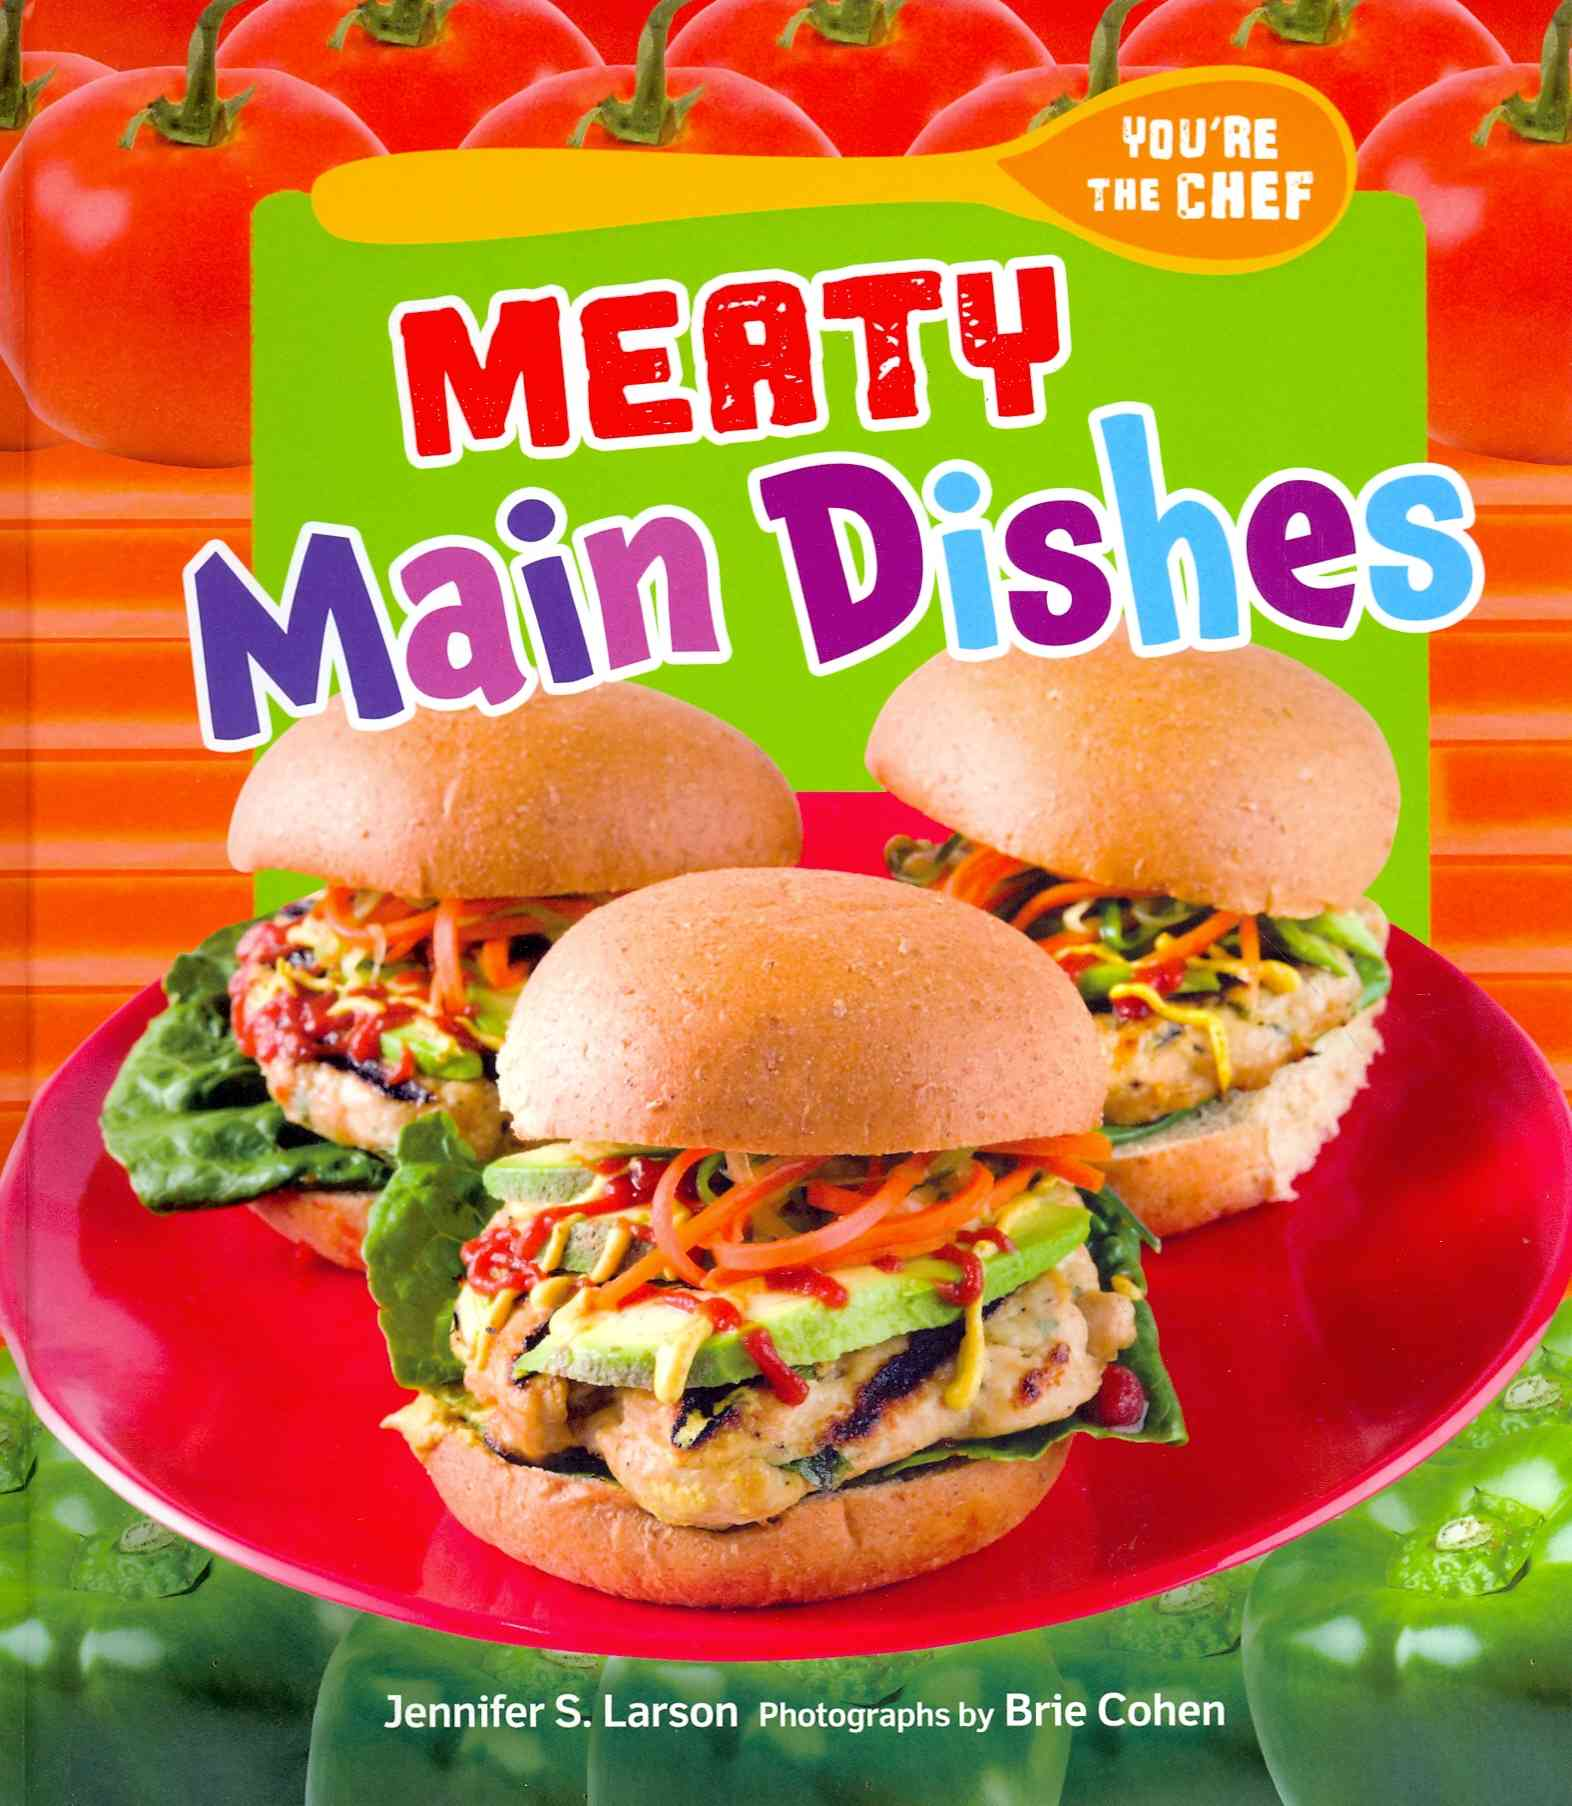 Meaty Main Dishes By Larson, Jennifer S.